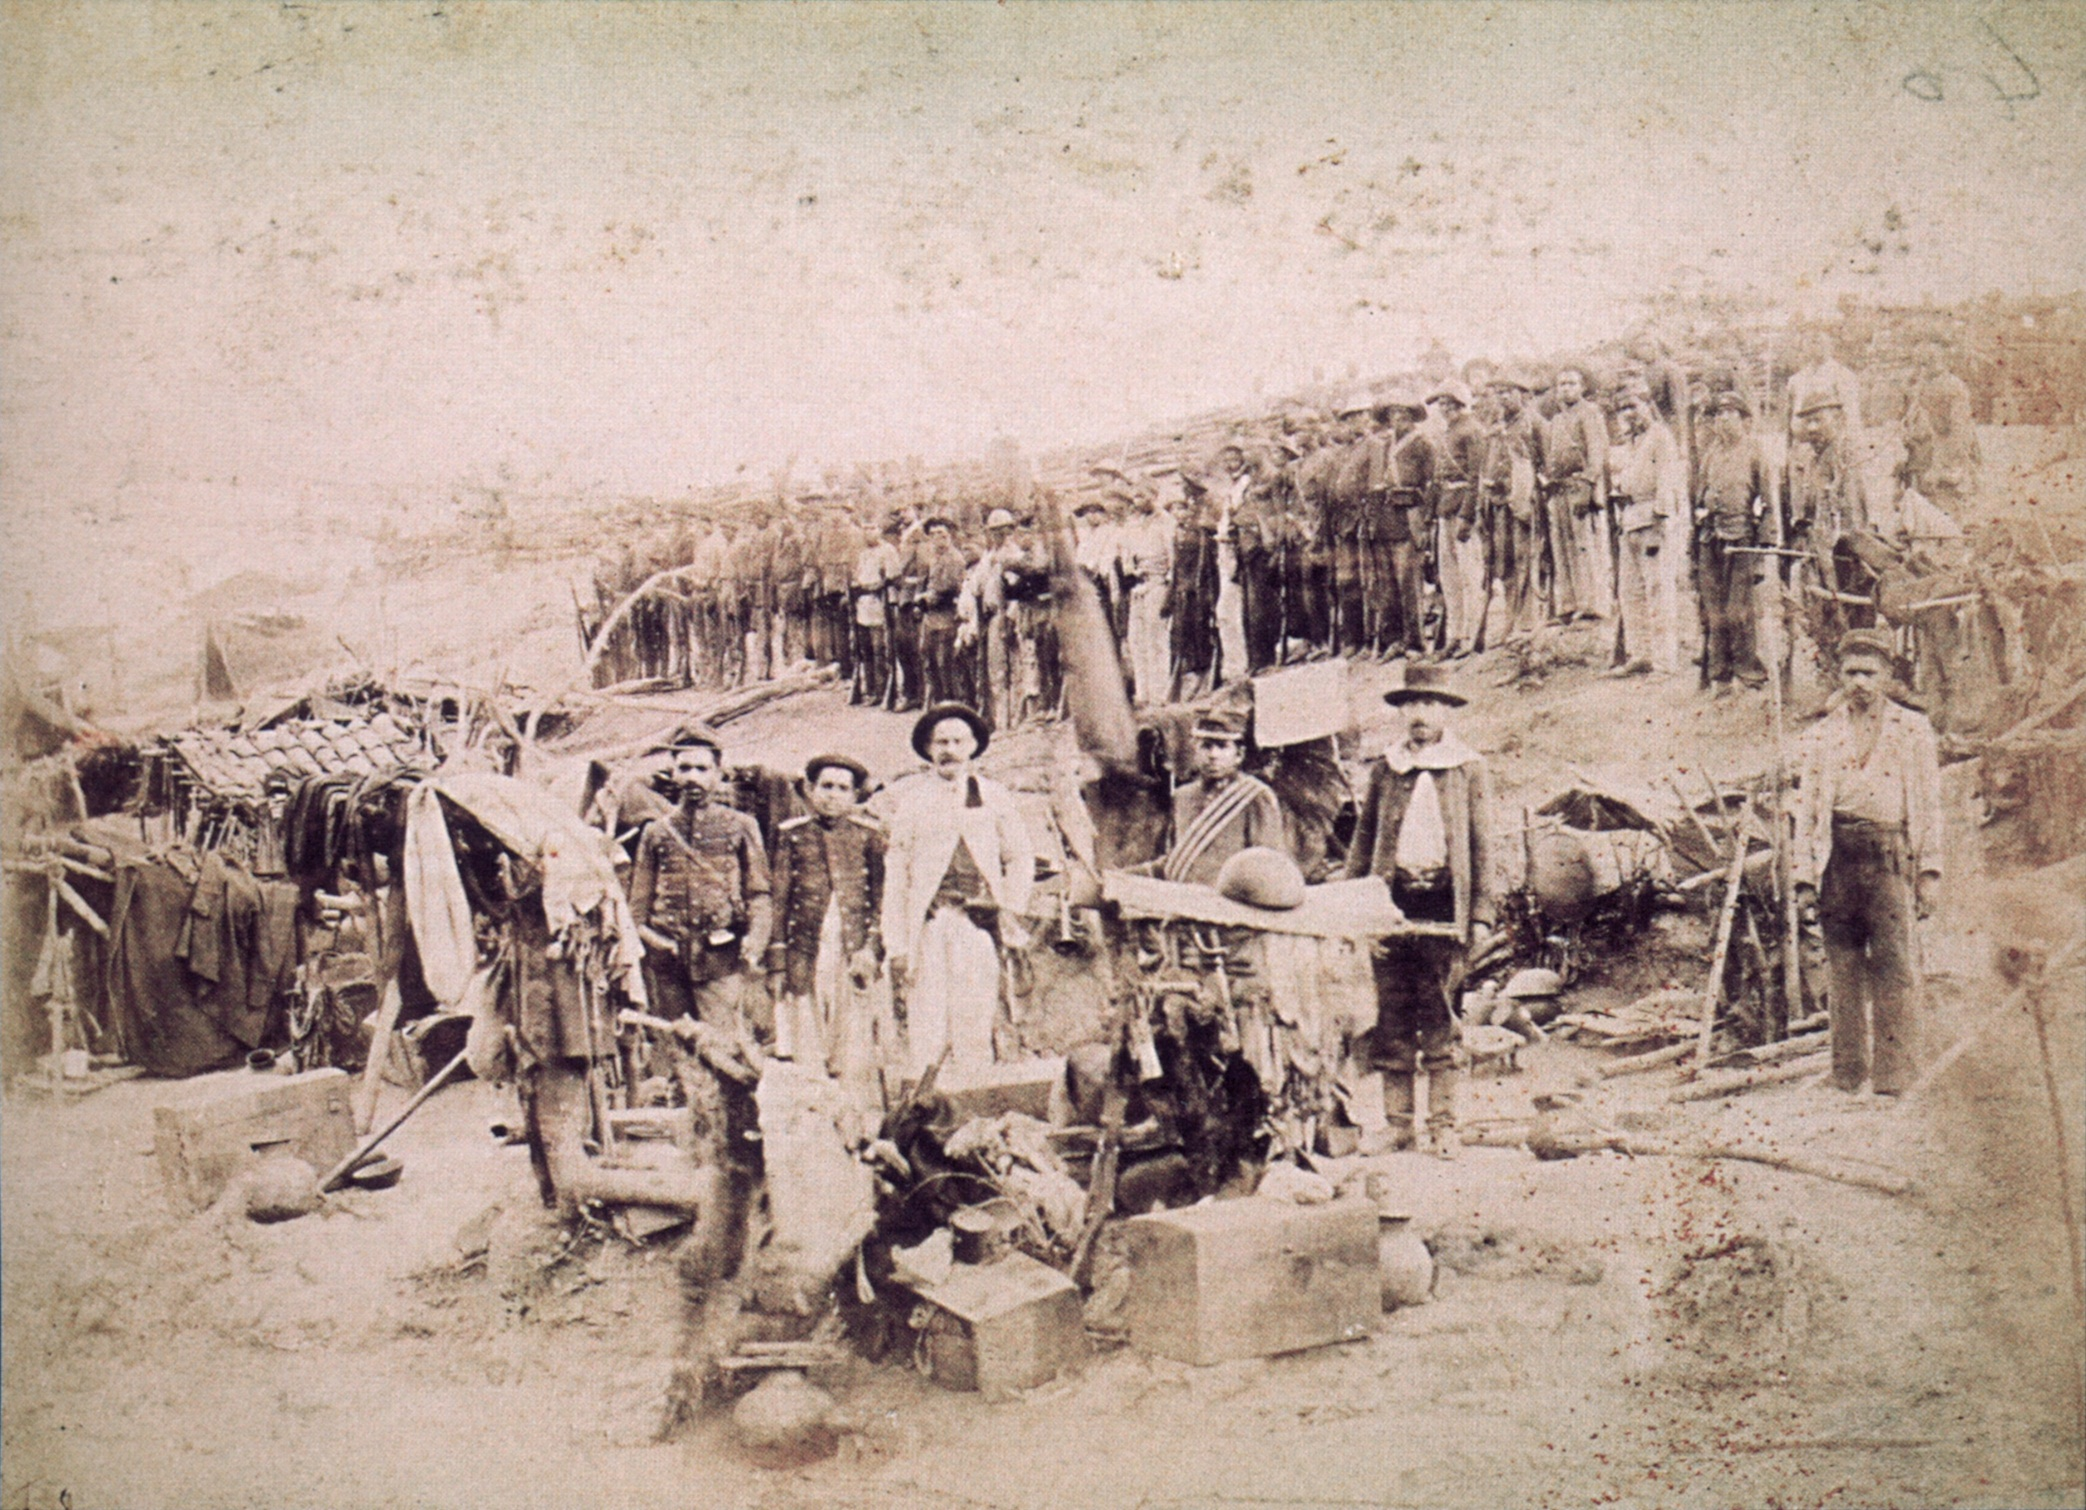 http://upload.wikimedia.org/wikipedia/commons/7/7d/40th_infantry_batallion_canudos_1897.jpg